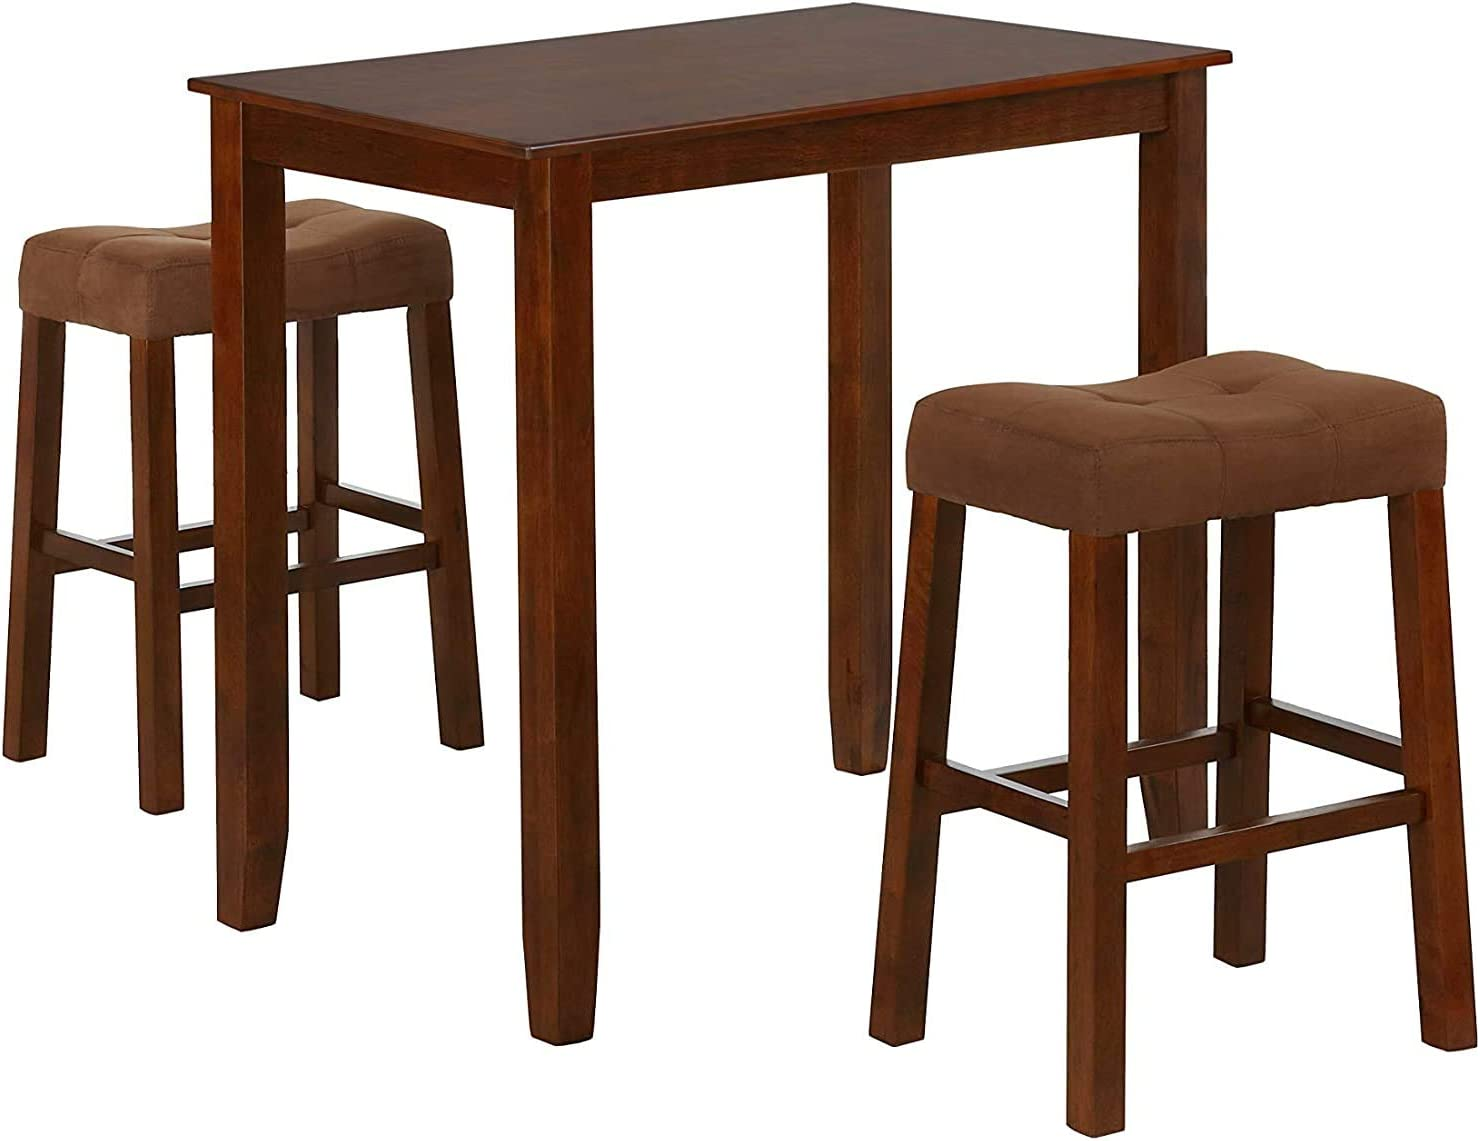 Nathaniel Home 3 Piece Dining Table Set, Counter Height Dining Furniture One Bench and Two Saddle Stools, Compact, Space-Saving Design, Small Space, Apartment, Condo, Dorm Rooms (Oak 61219-78)